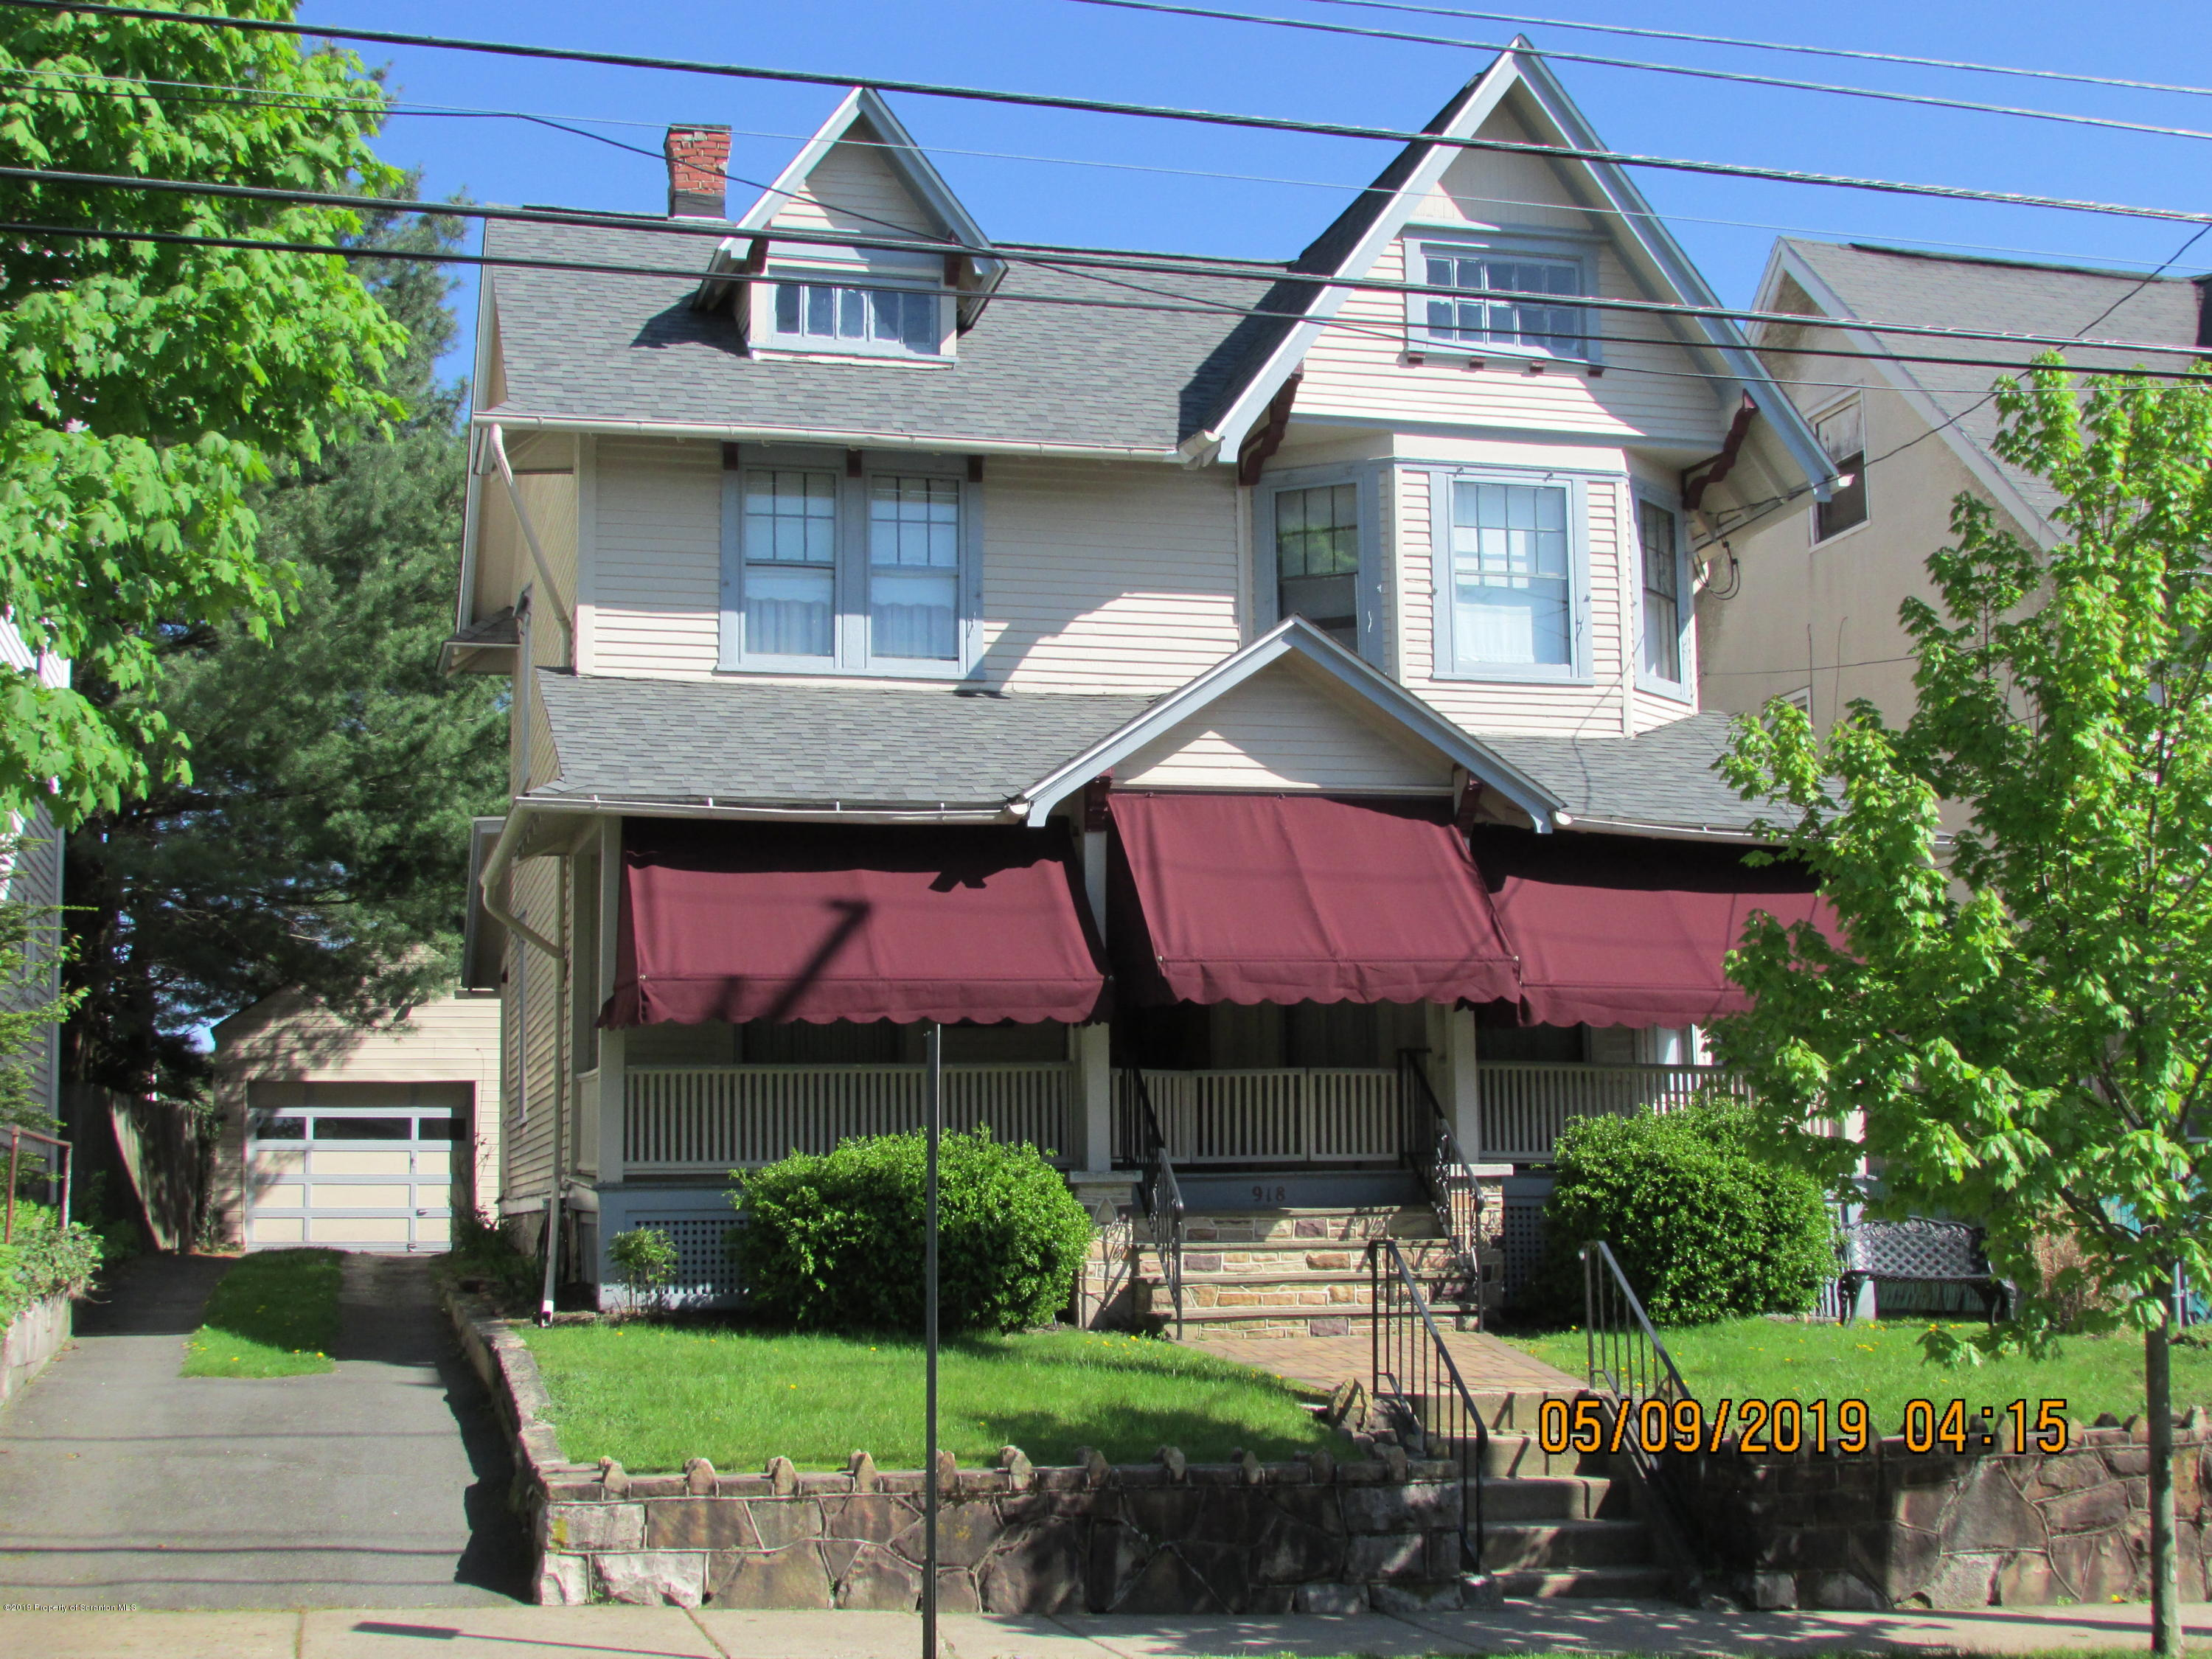 918 Prescott Ave, Scranton, Pennsylvania 18510, 4 Bedrooms Bedrooms, 8 Rooms Rooms,1 BathroomBathrooms,Single Family,For Sale,Prescott,19-2197